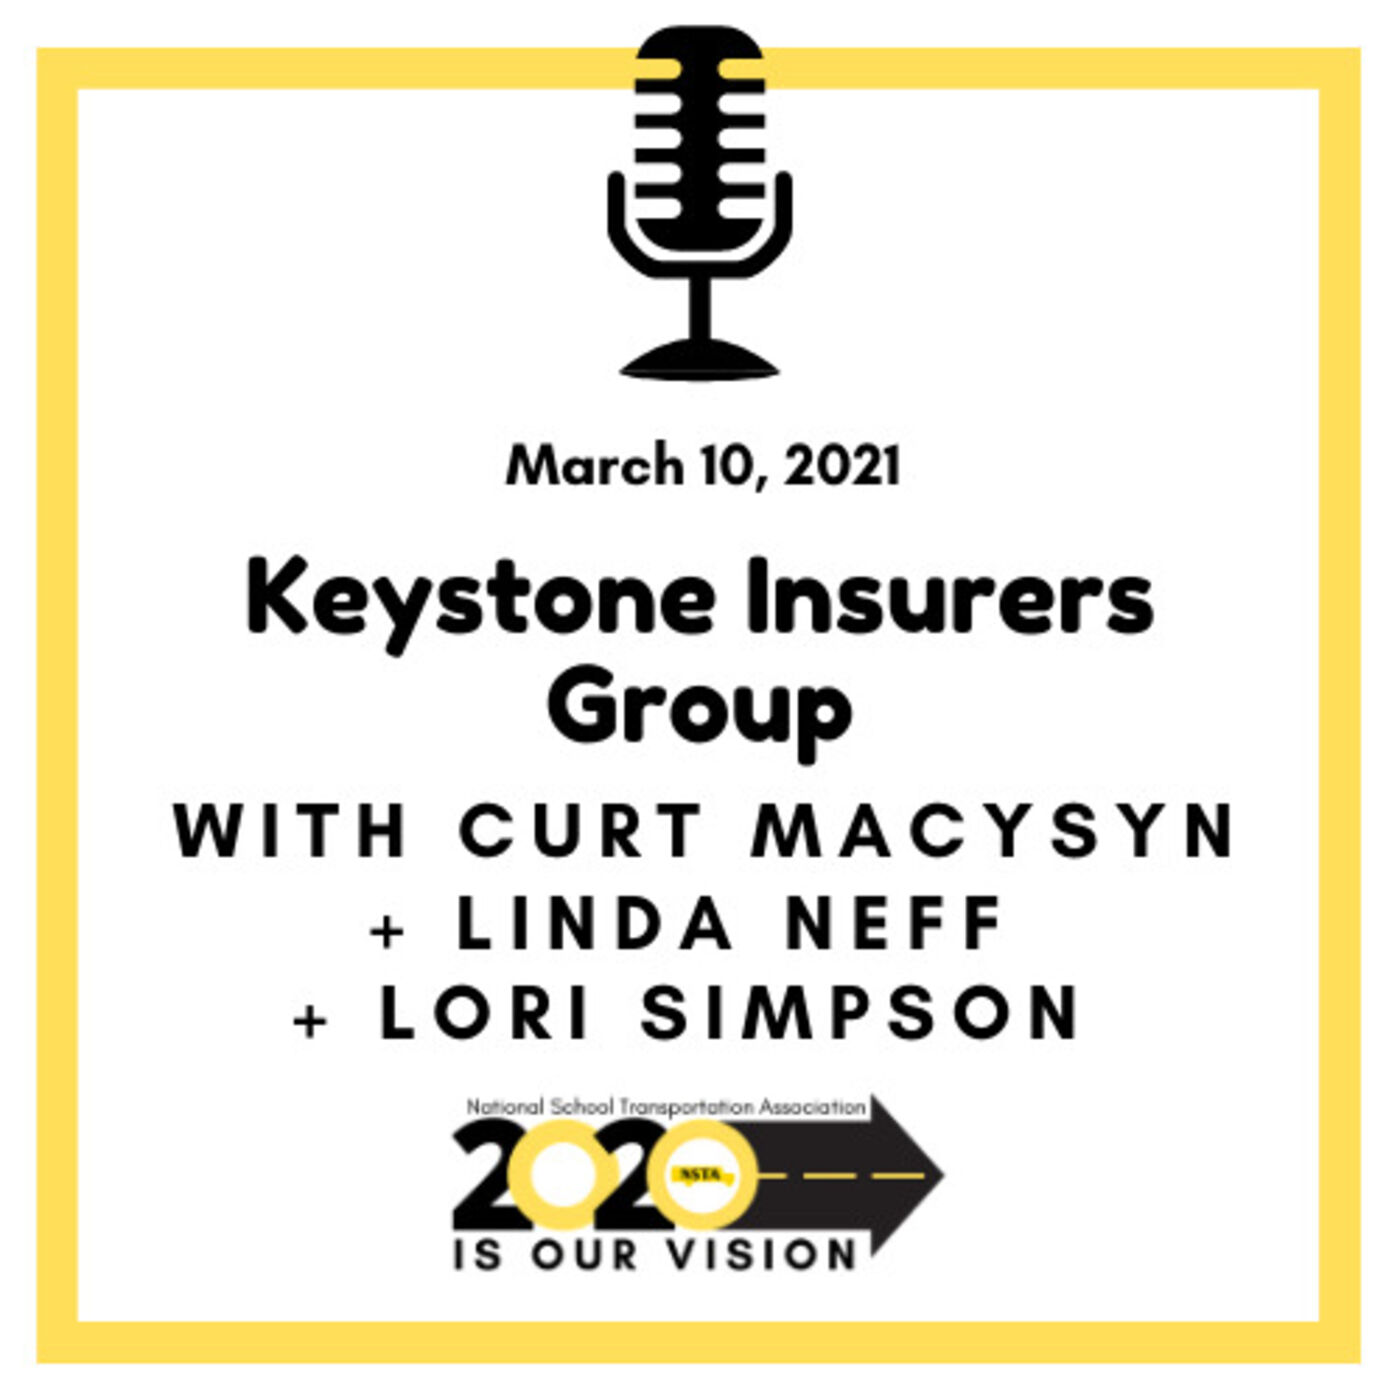 Keystone Insurers Group-Linda Neff and Lori Simpson